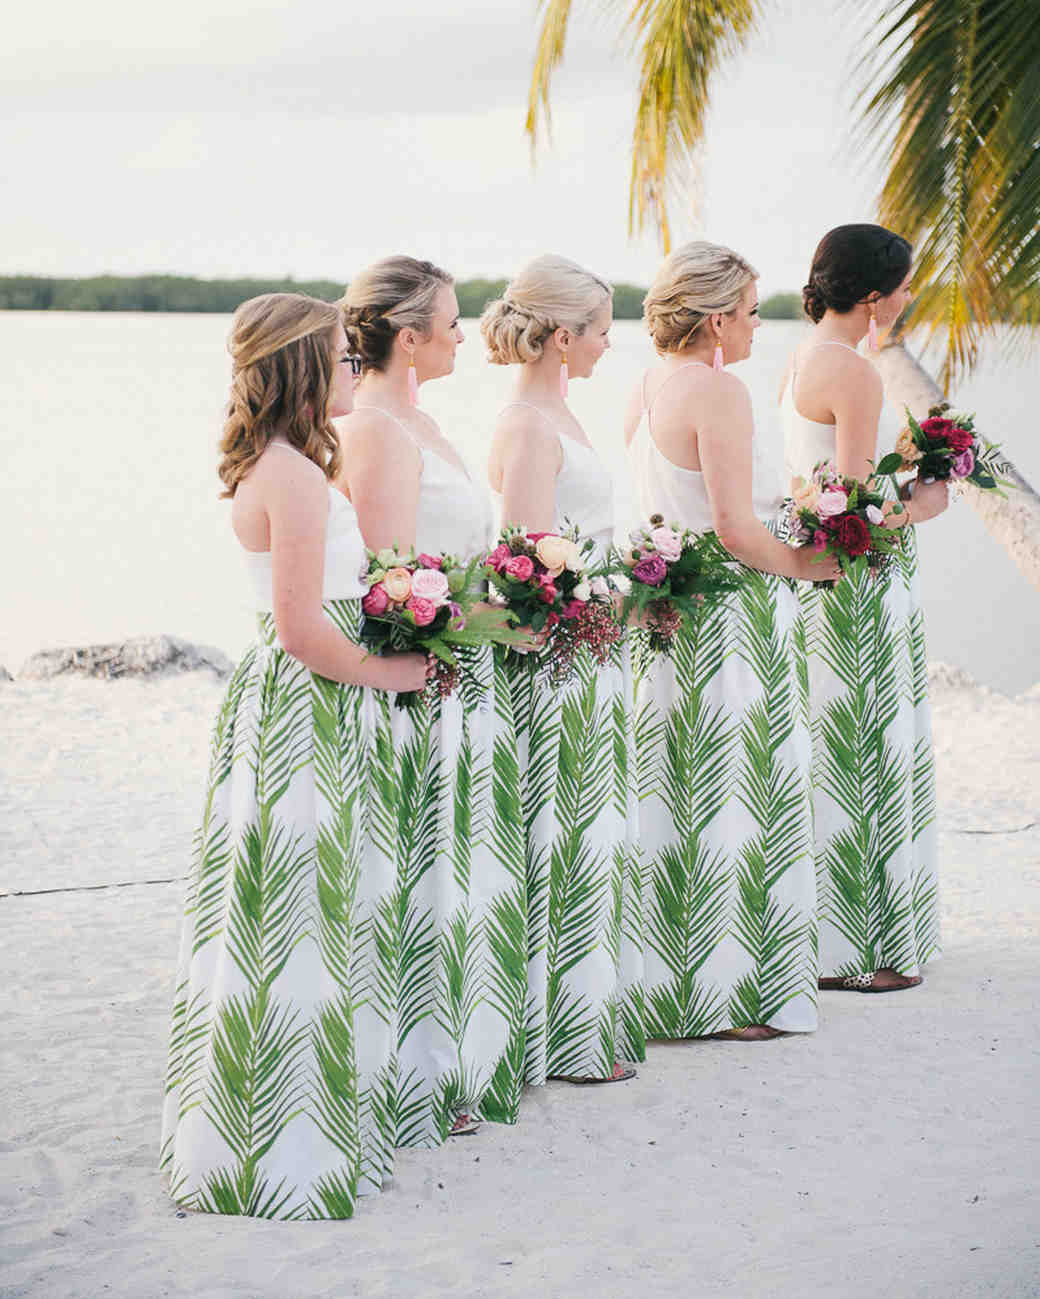 Beach Pics Ideas Beautiful Ideas From Beach Weddings Martha Stewart Weddings